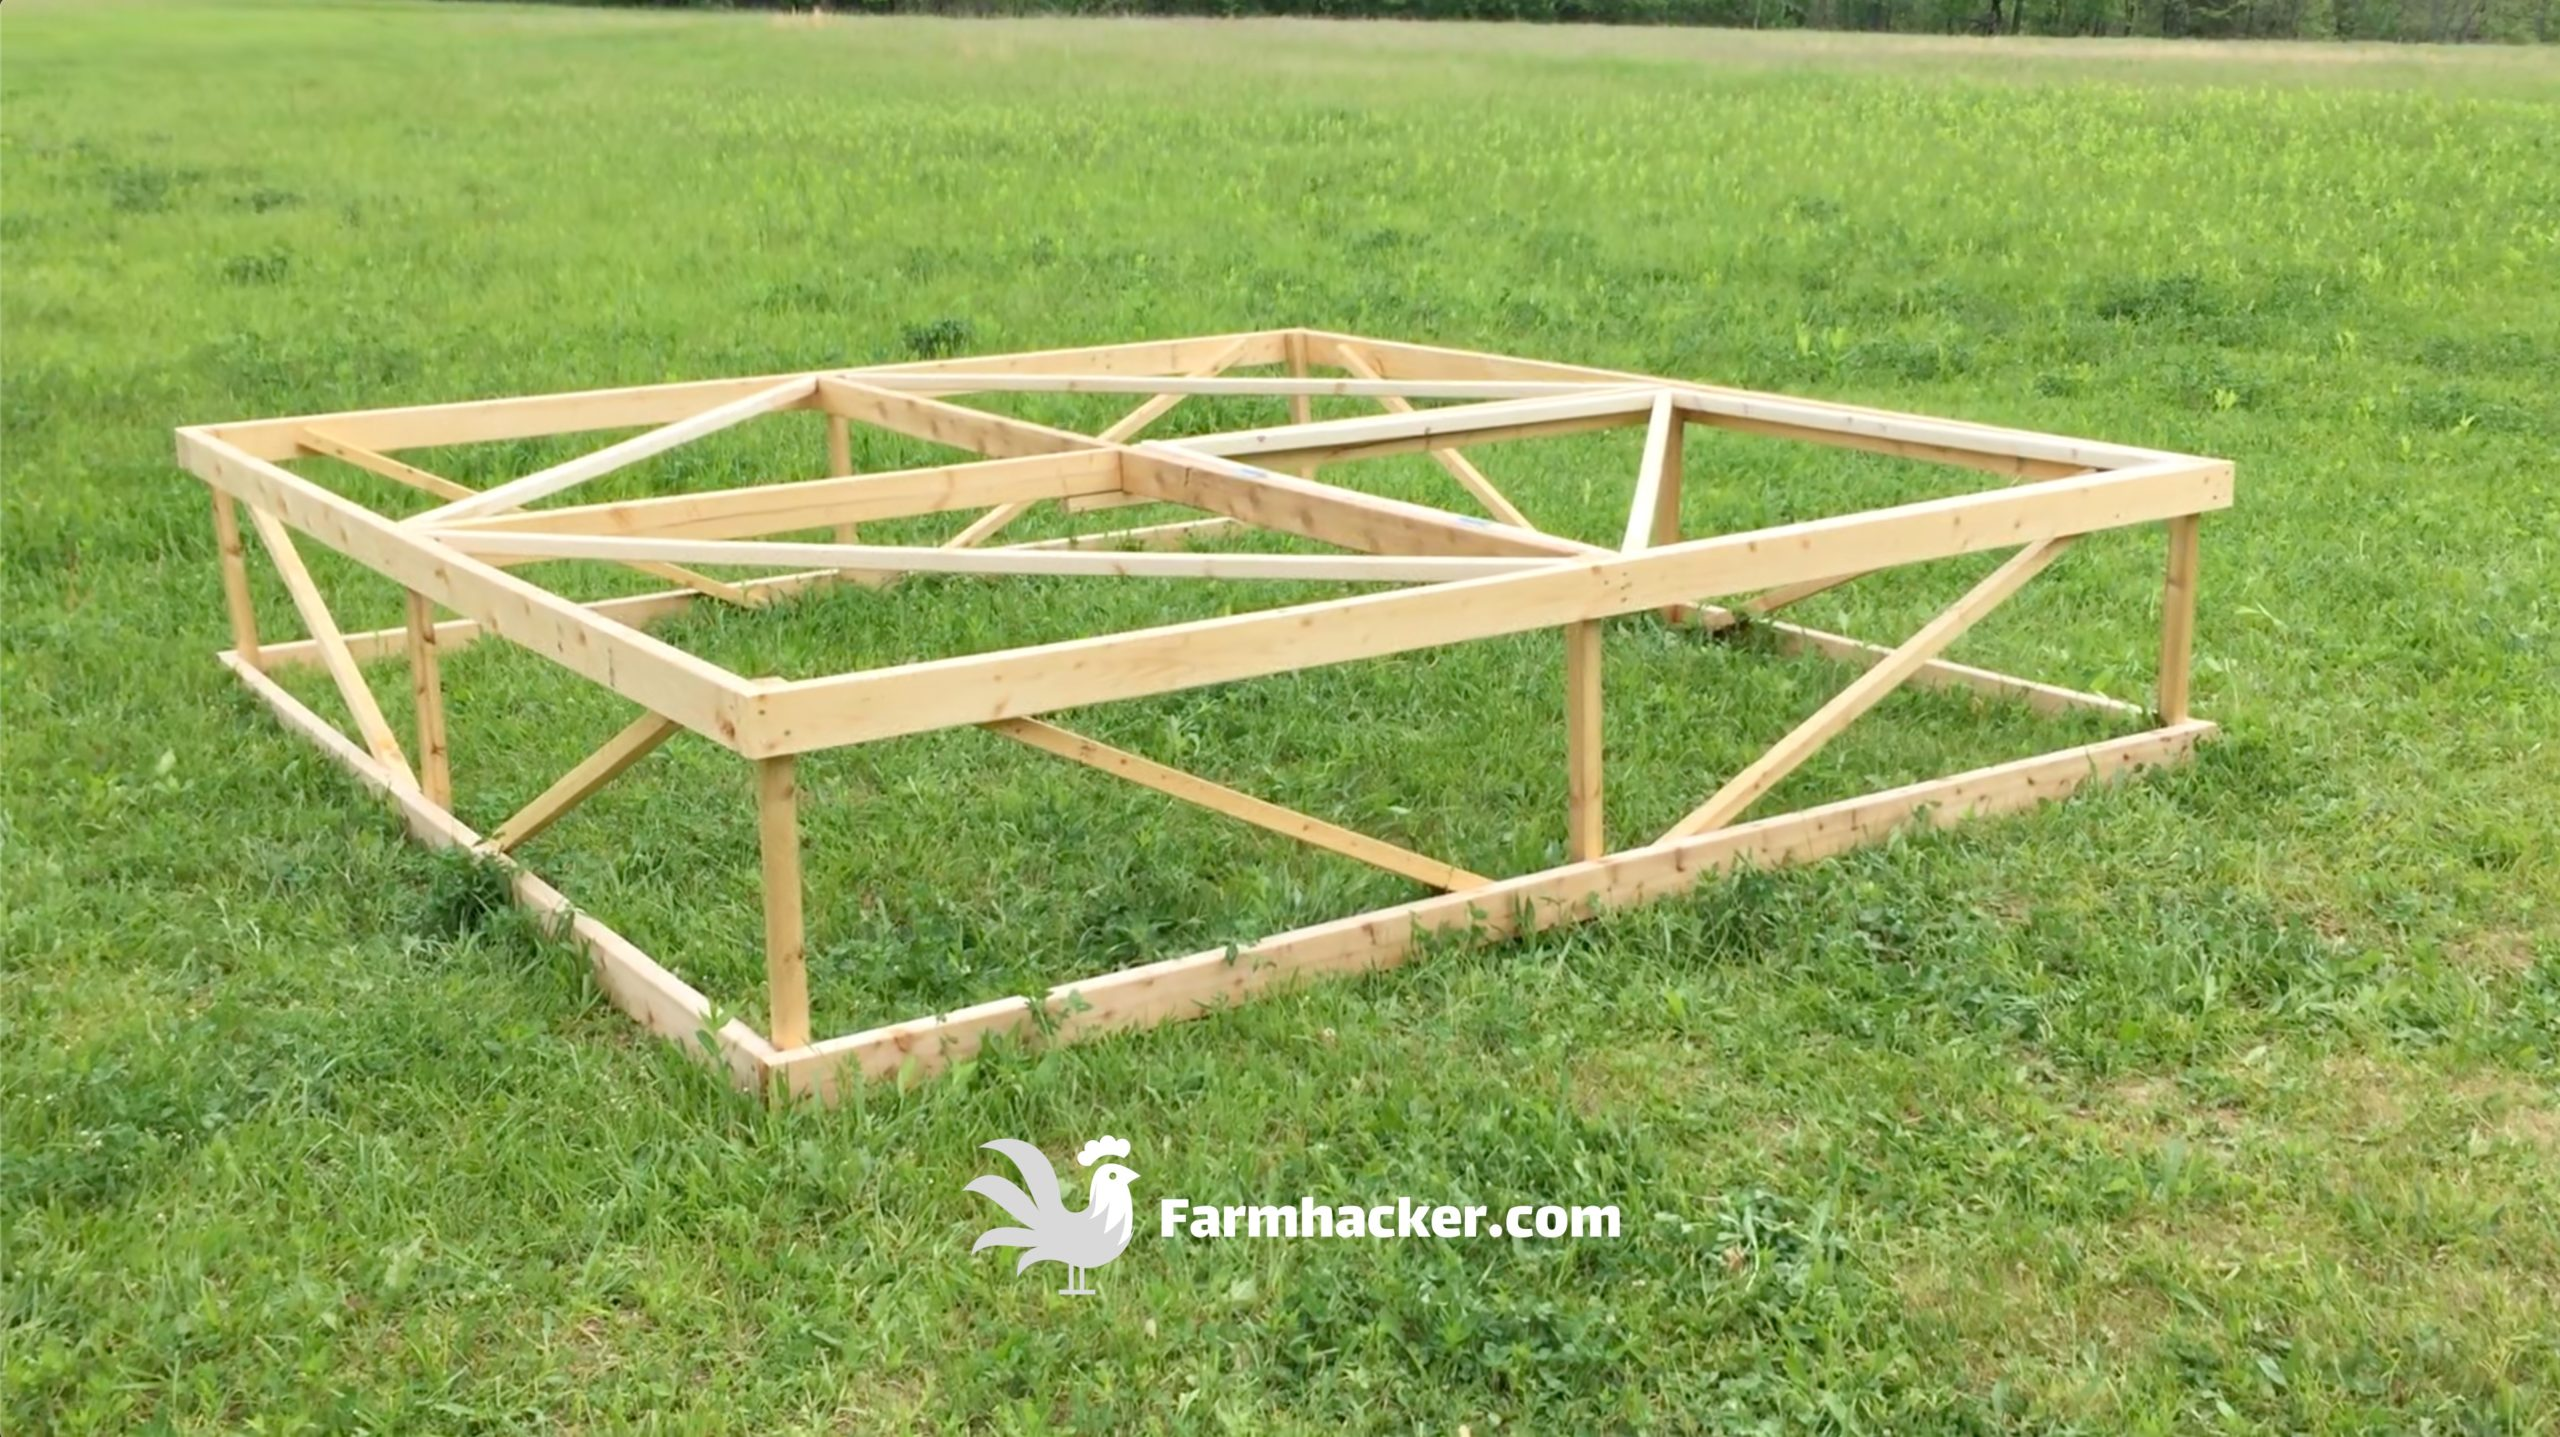 How to Build a Joel Salatin Style Chicken Tractor Step 2